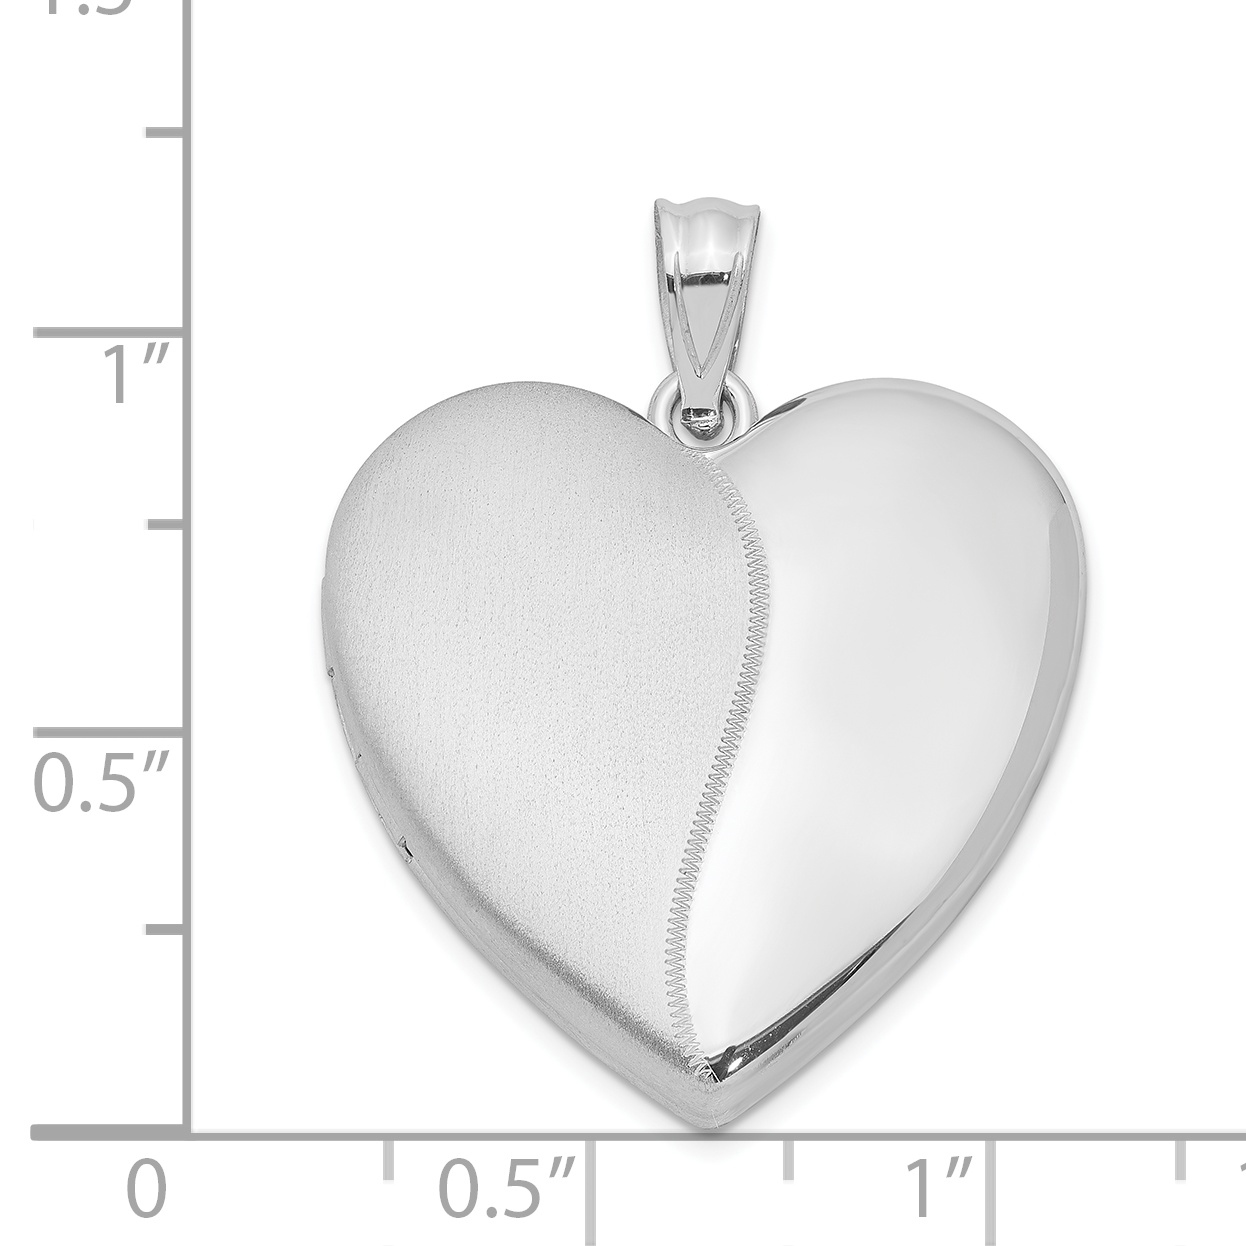 925 Sterling Silver 24mm Heart Photo Pendant Charm Locket Chain Necklace That Holds Pictures Fine Jewelry Gifts For Women For Her - image 1 of 3